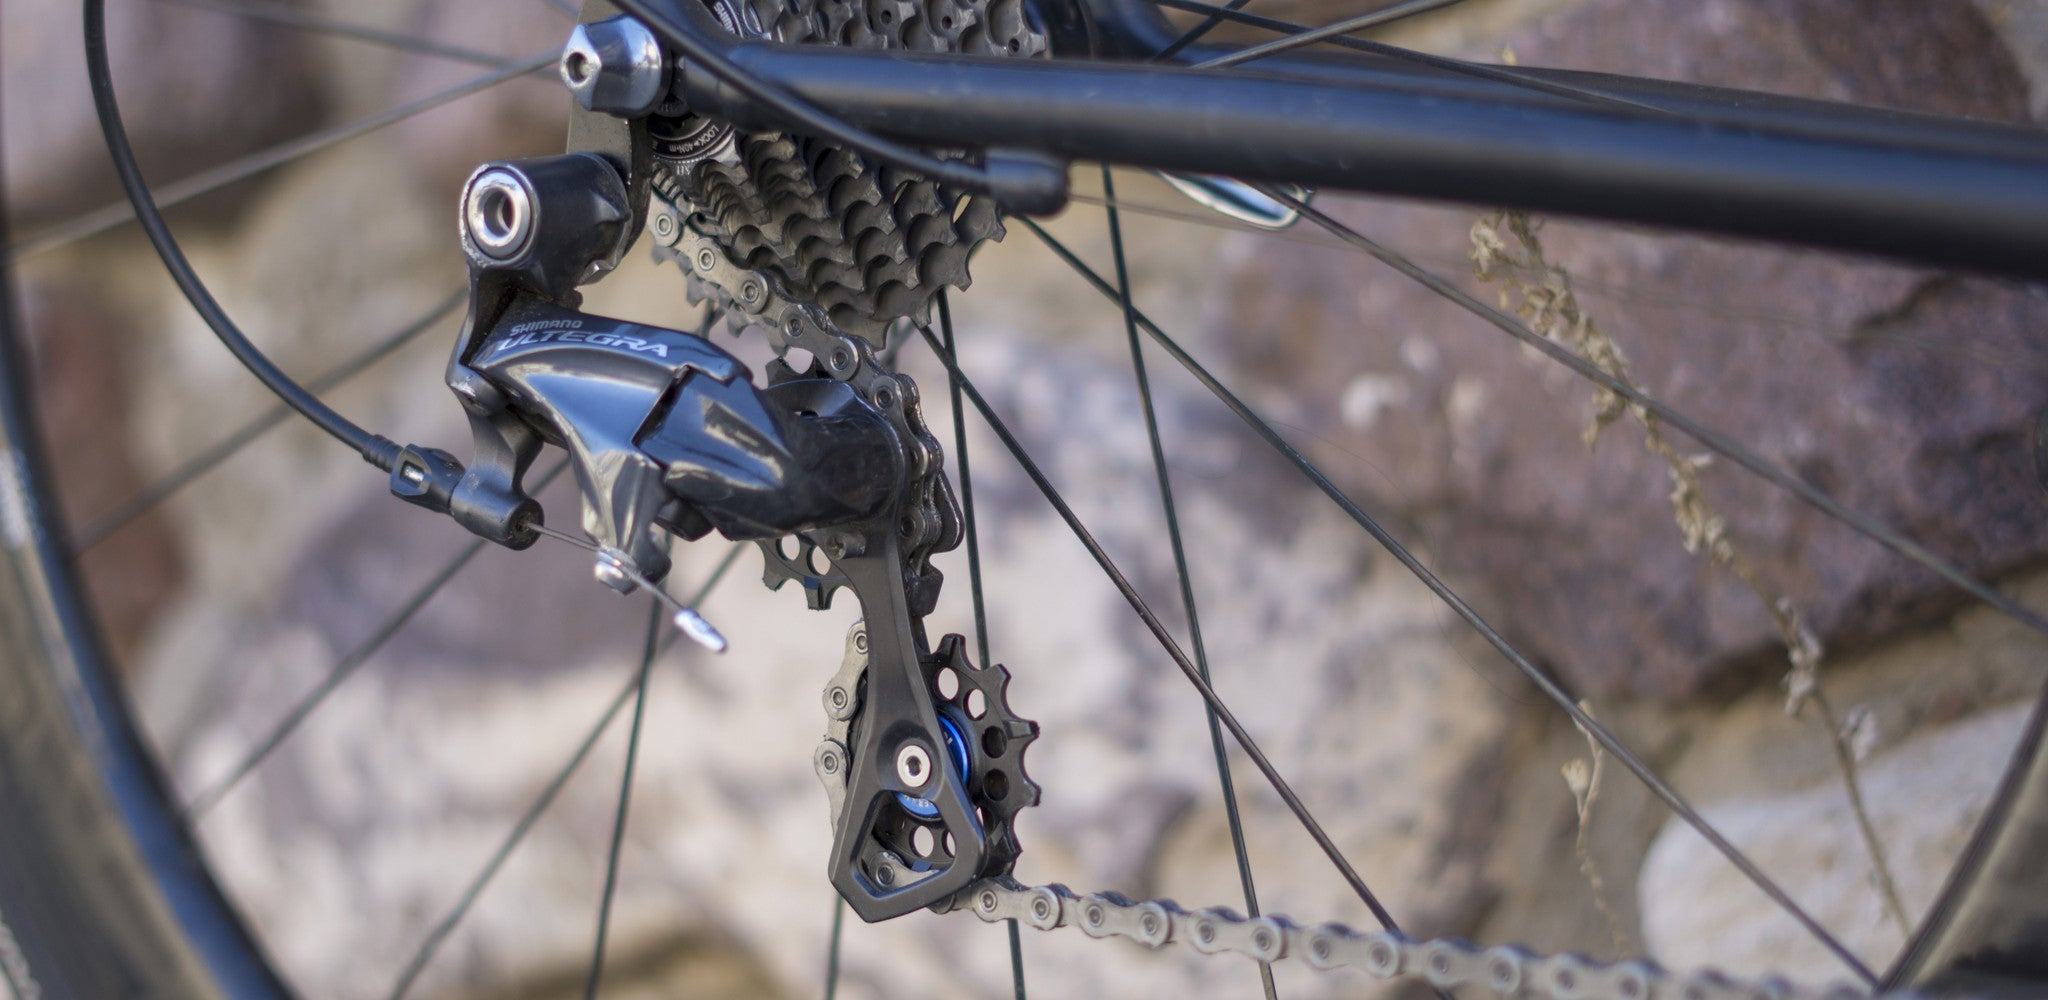 Do oversized derailleur pulleys really help? Part 2